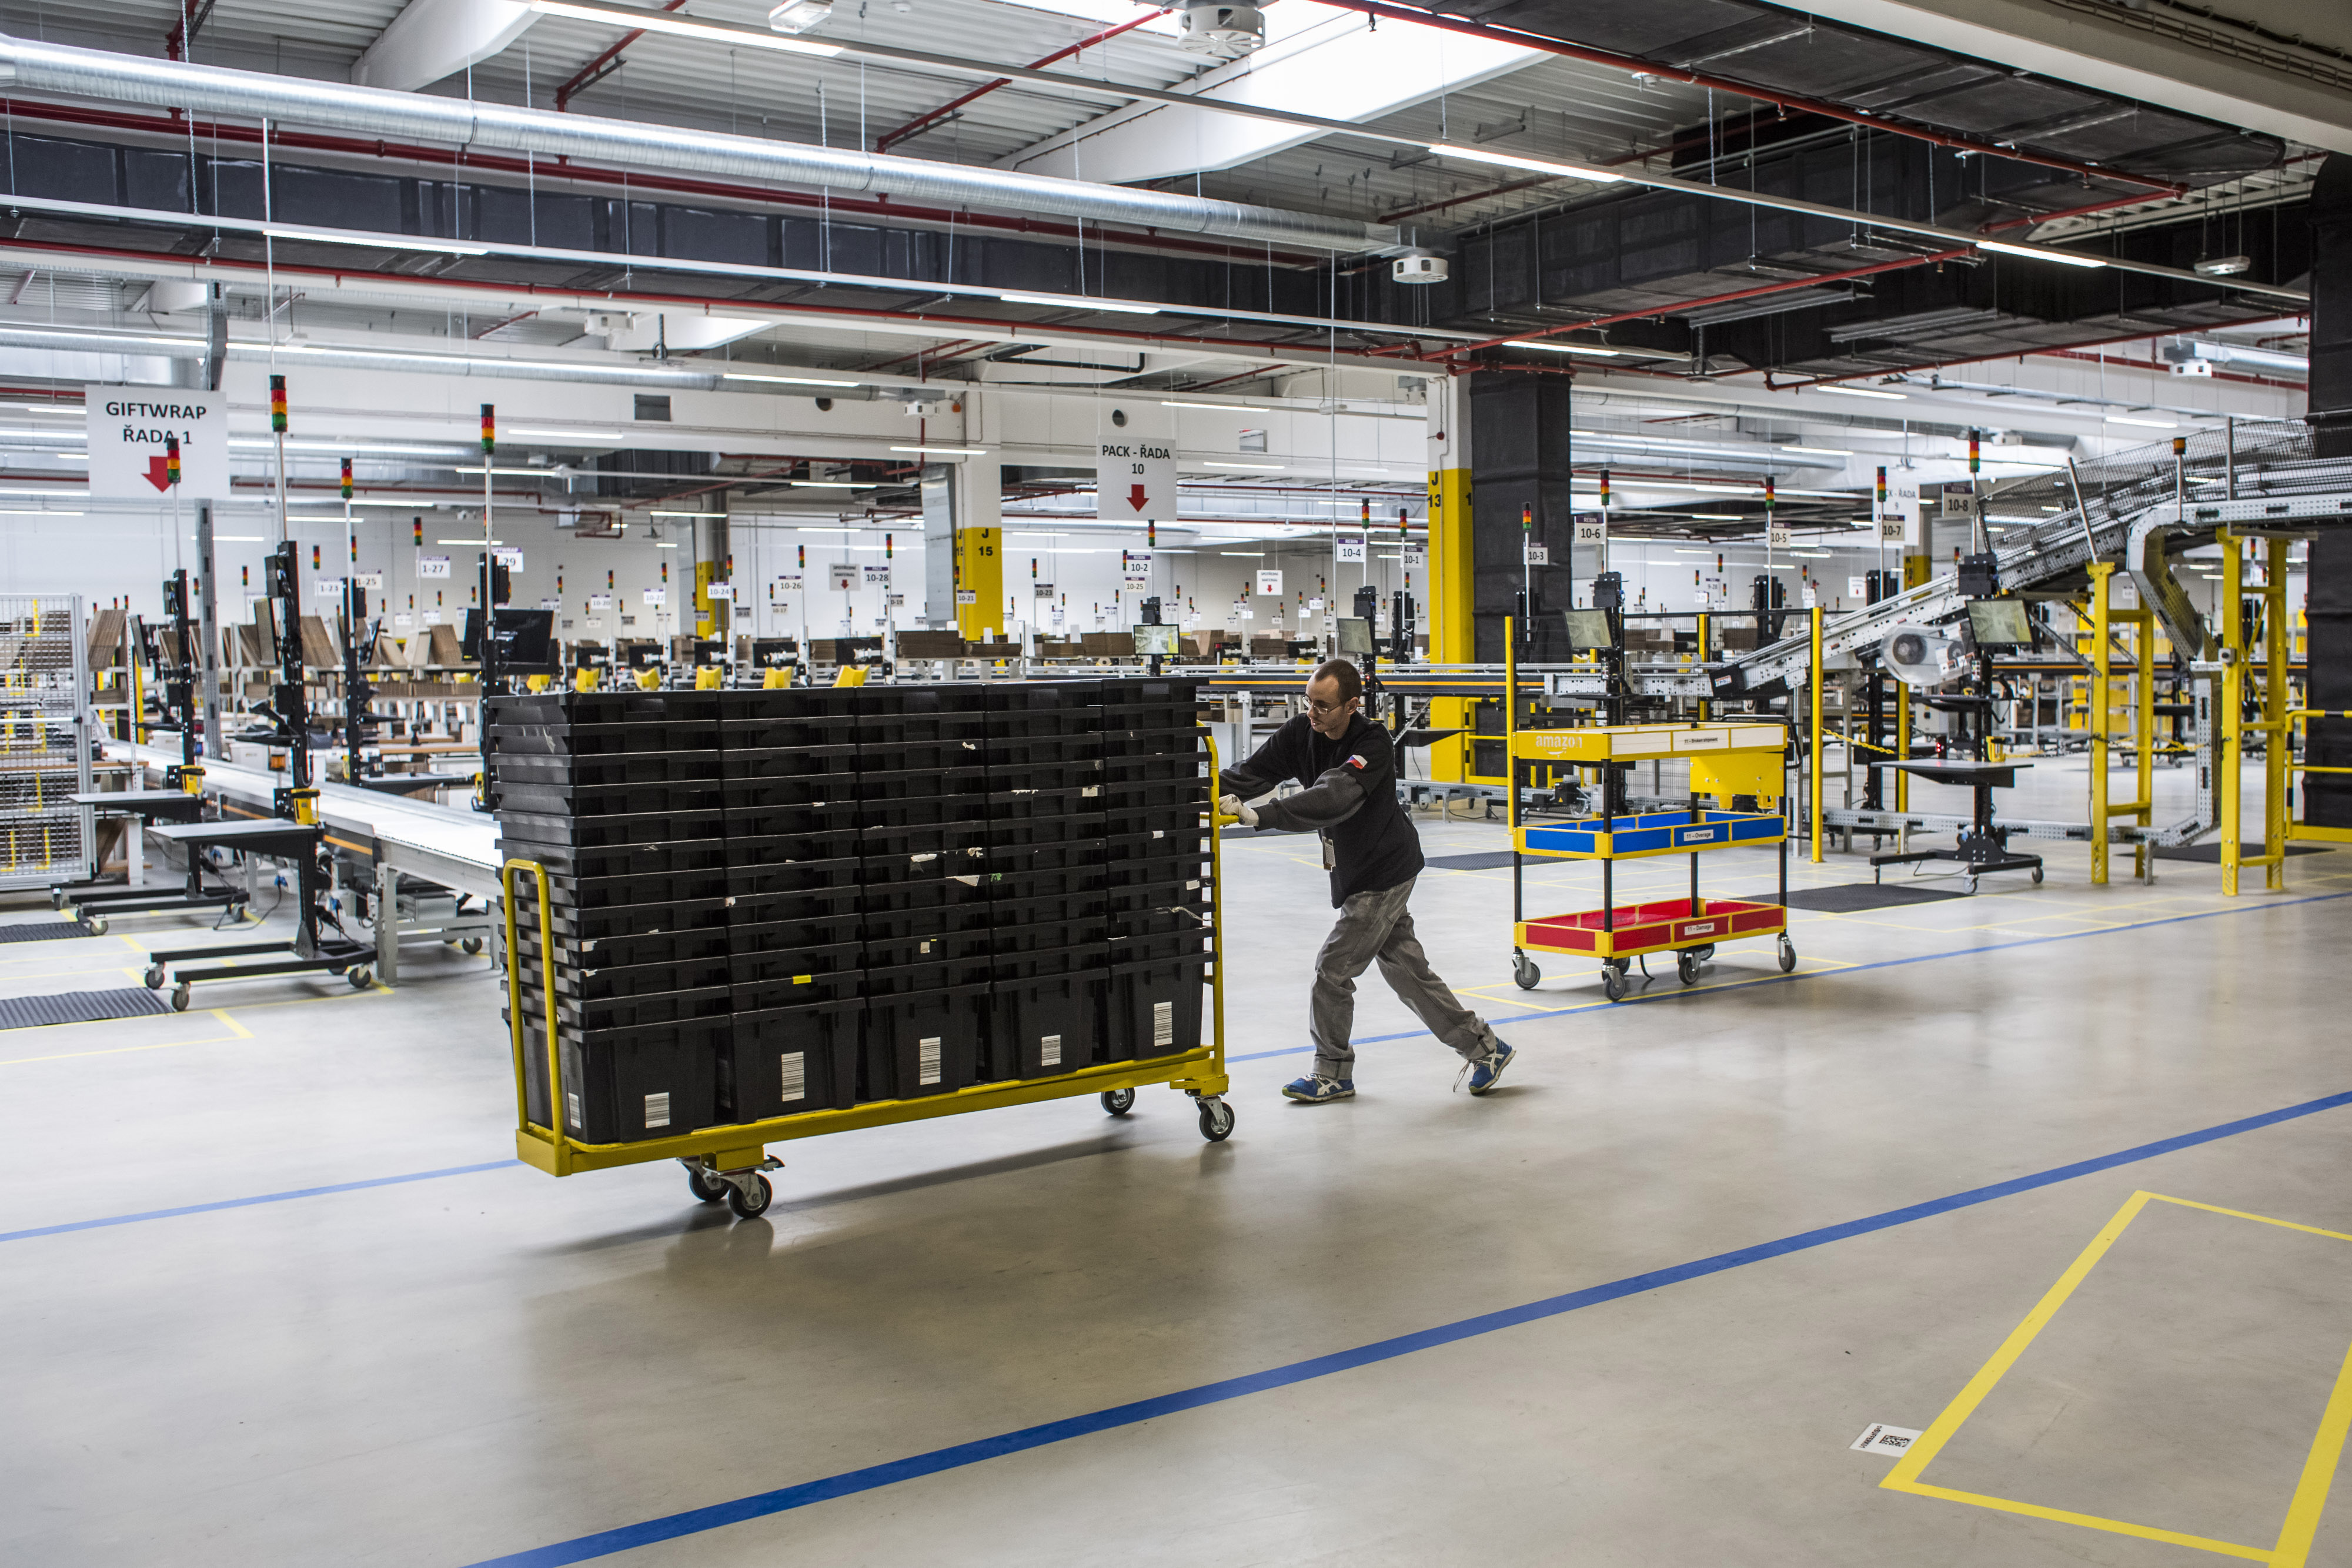 An employee moves a cart loaded with empty product crates through the shipping zone on the opening day of the new Amazon.Com Inc. fulfillment center in Dobroviz, Czech Republic, on Tuesday, Sept. 8, 2015.